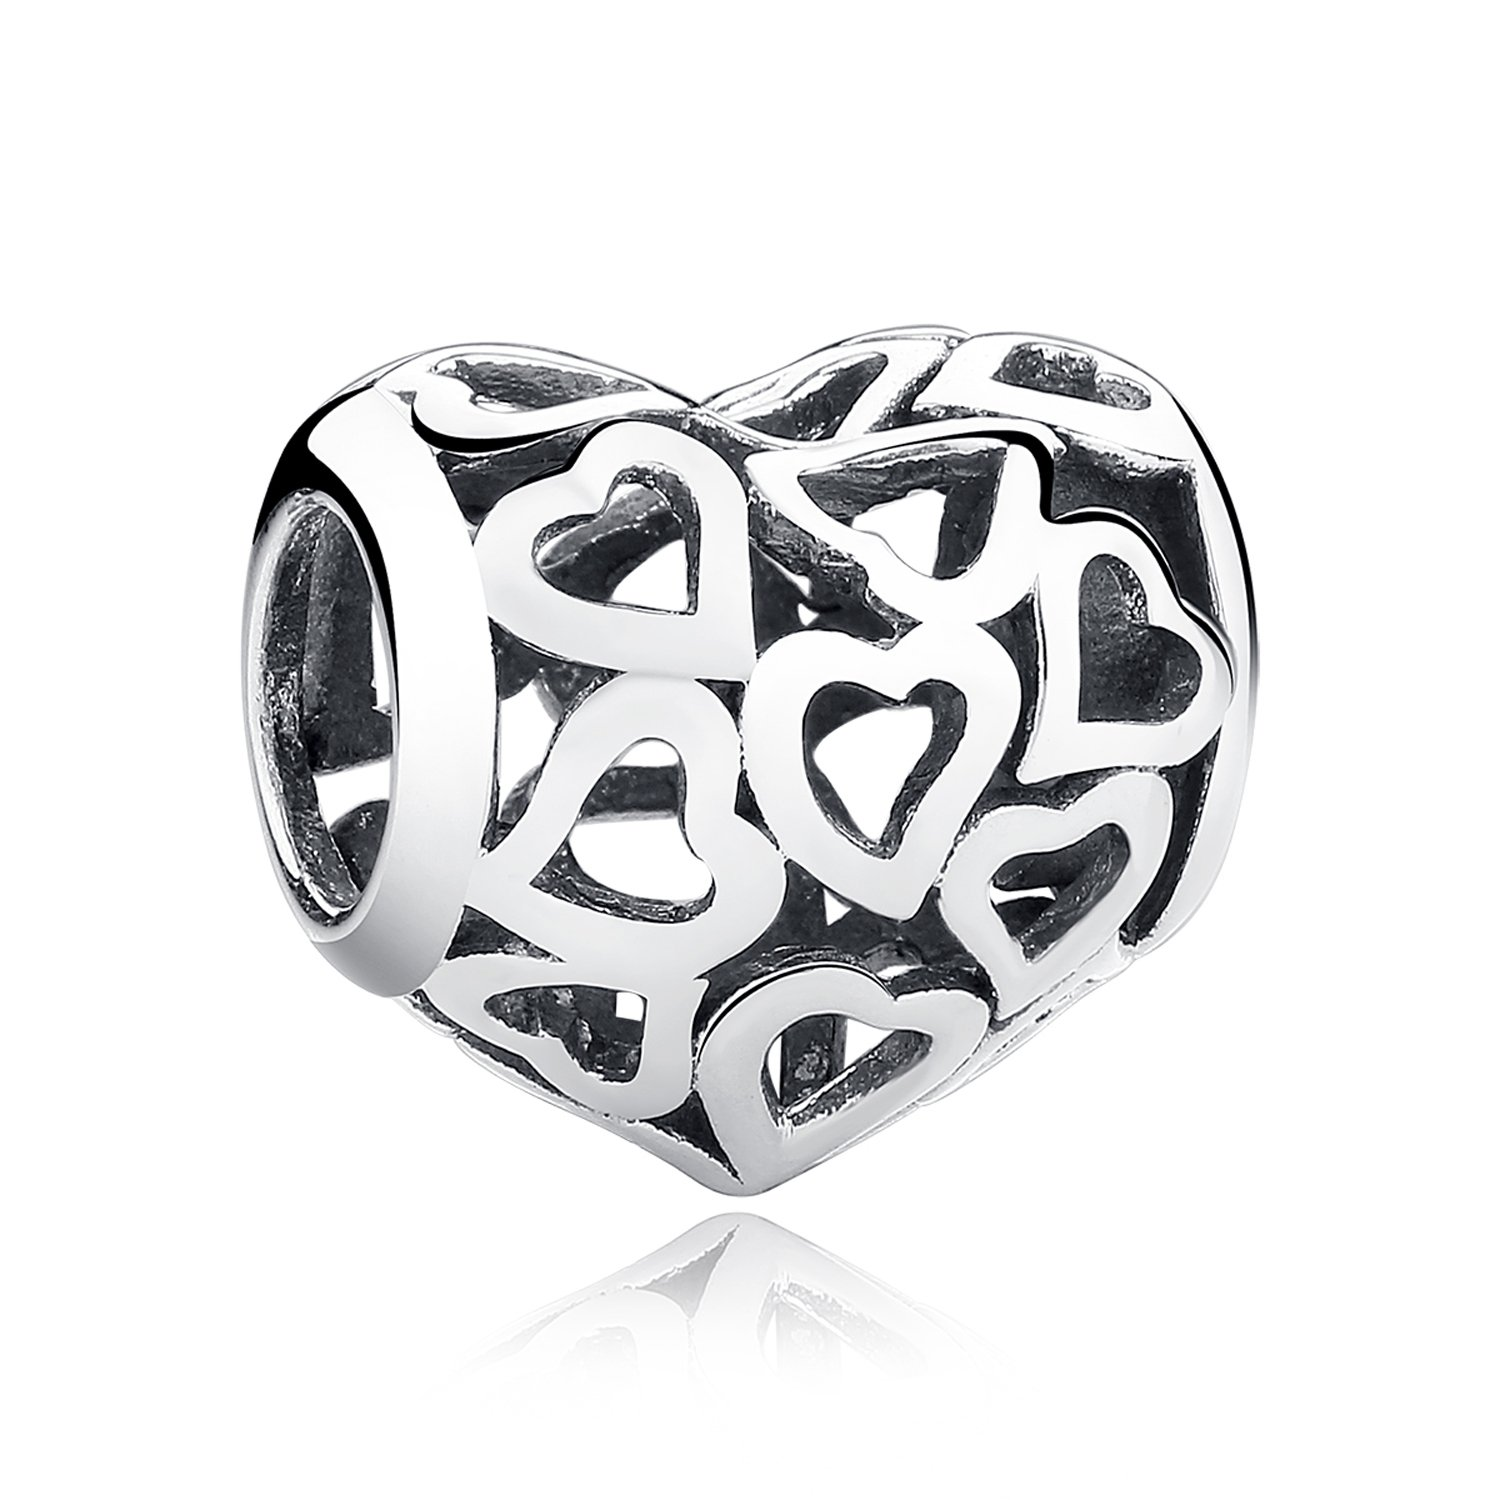 XingYue Jewelry Love Heart S925 Sterling Silver Openwork Bead Charm Protect Me in Your Heart Forever Charm Fit Bracelet (Openwork heart charm) by XingYue Jewelry (Image #1)